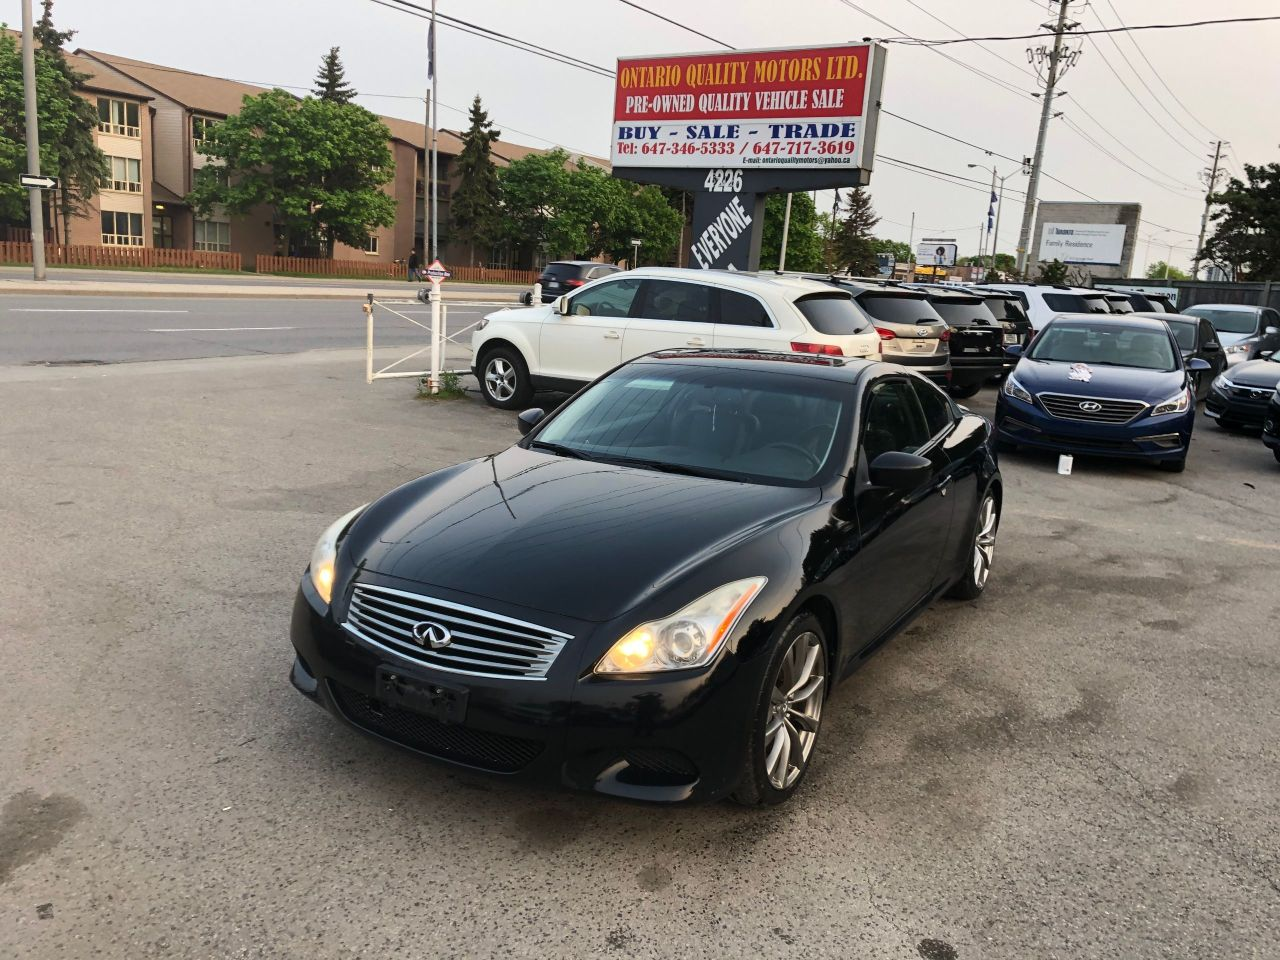 Ontario Quality Motors >> 2008 Infiniti G37 Ontario Quality Motors Ltd